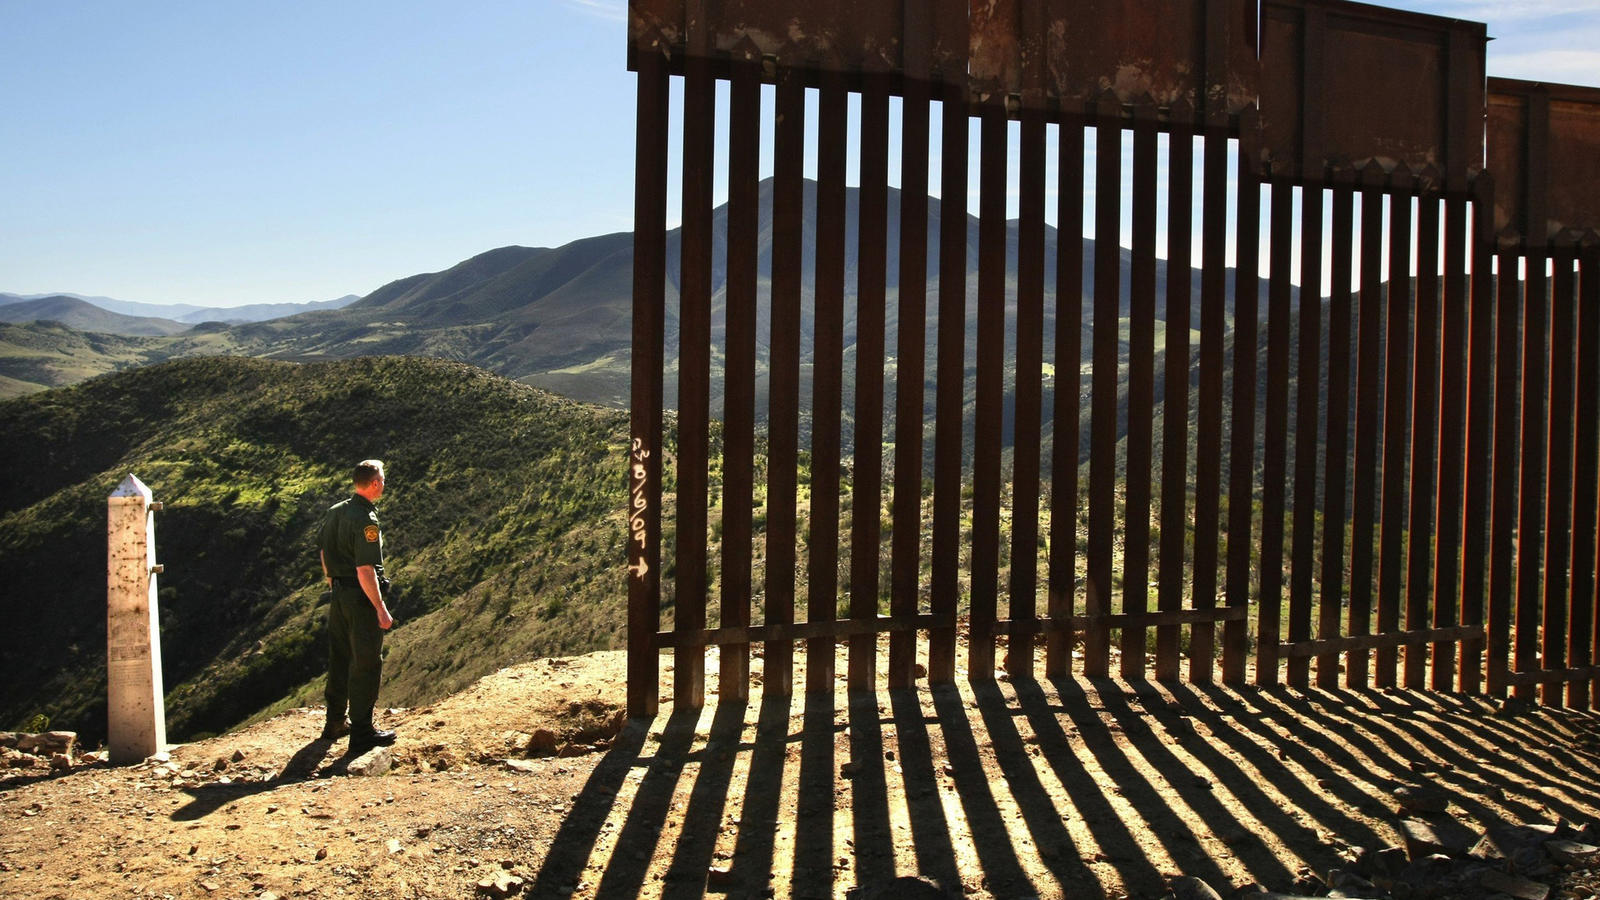 The border fence at the base of Otay Mountain in San Diego County. (Don Bartletti / Los Angeles Times)